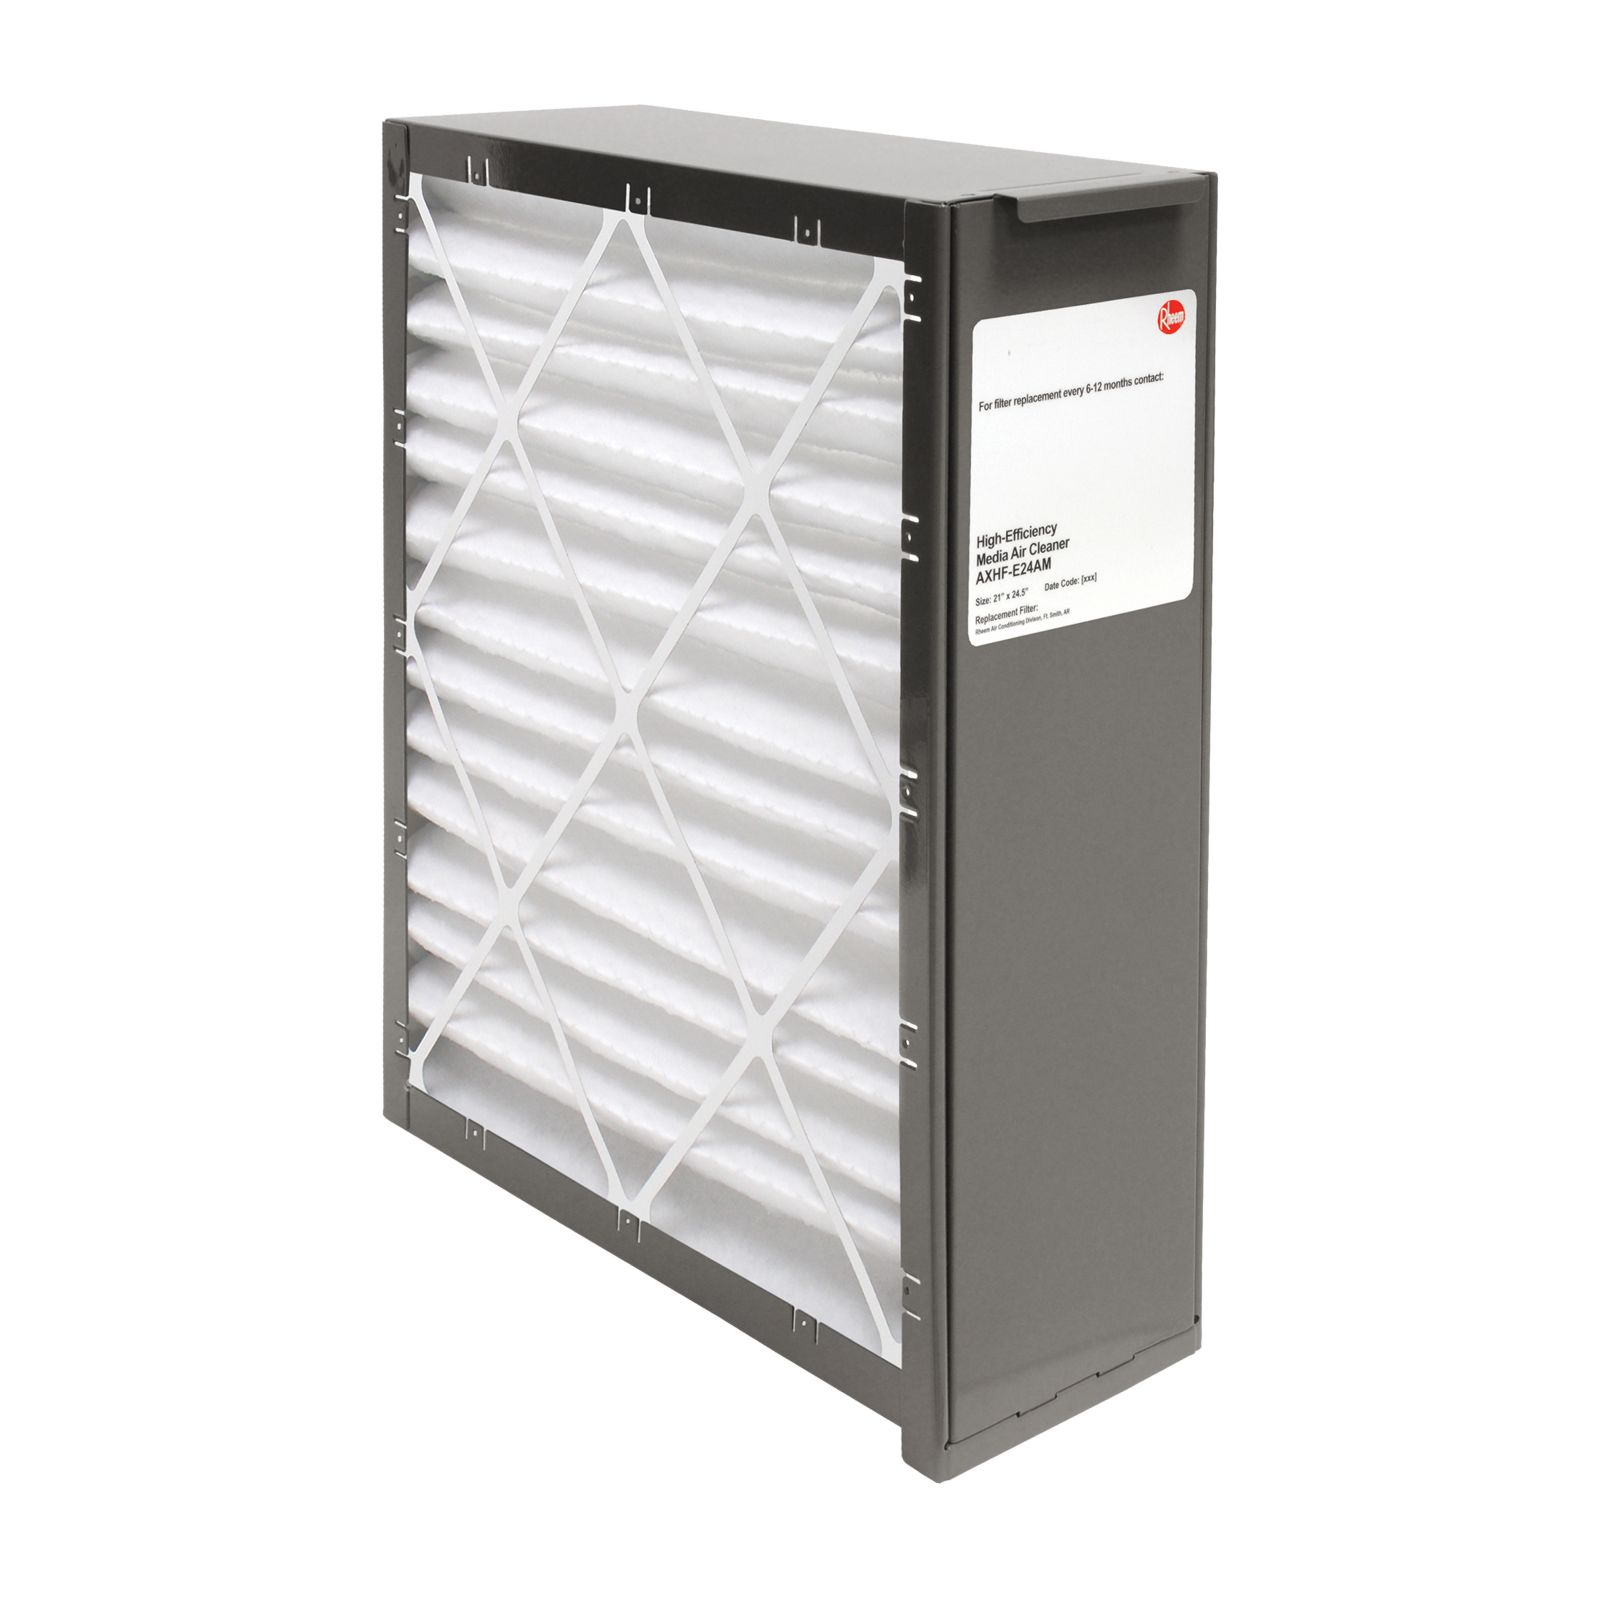 Rheem AXHF-E24AM - PROTECH Exact Fit Media Air Cleaners - Includes Merv 8 Filter Media - 24 1/2""